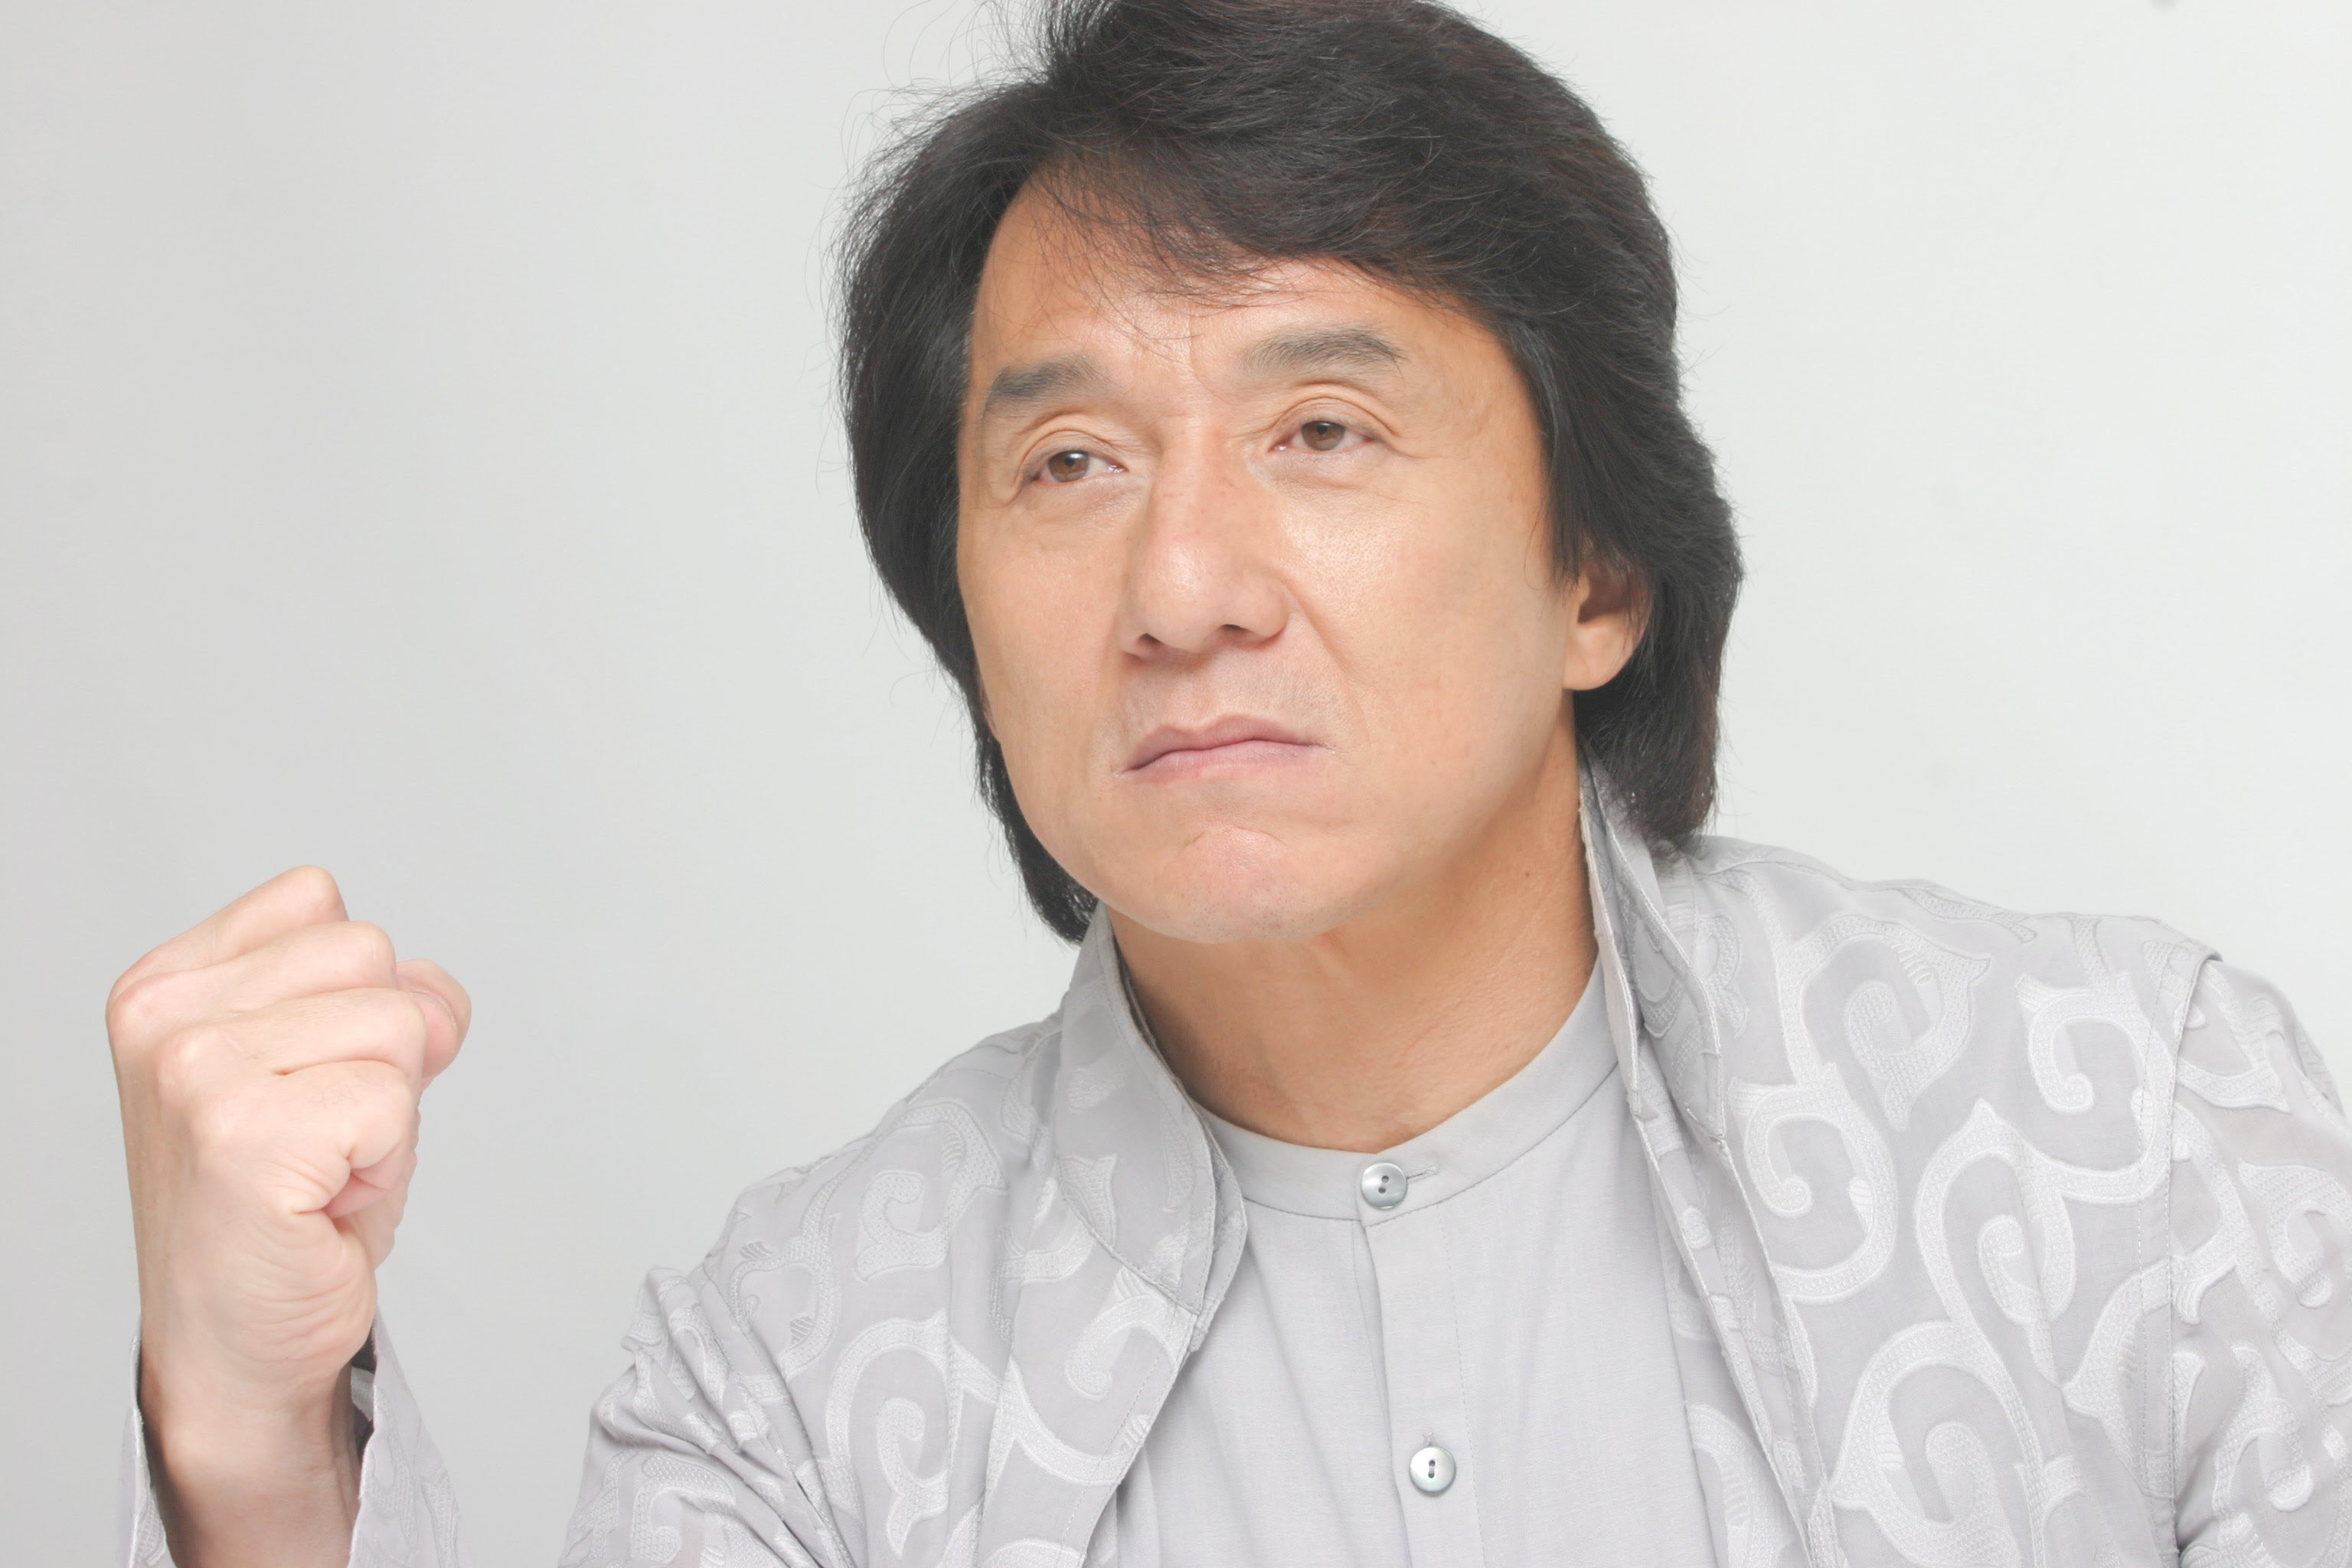 jackie chan strength mobile hd desktop photos